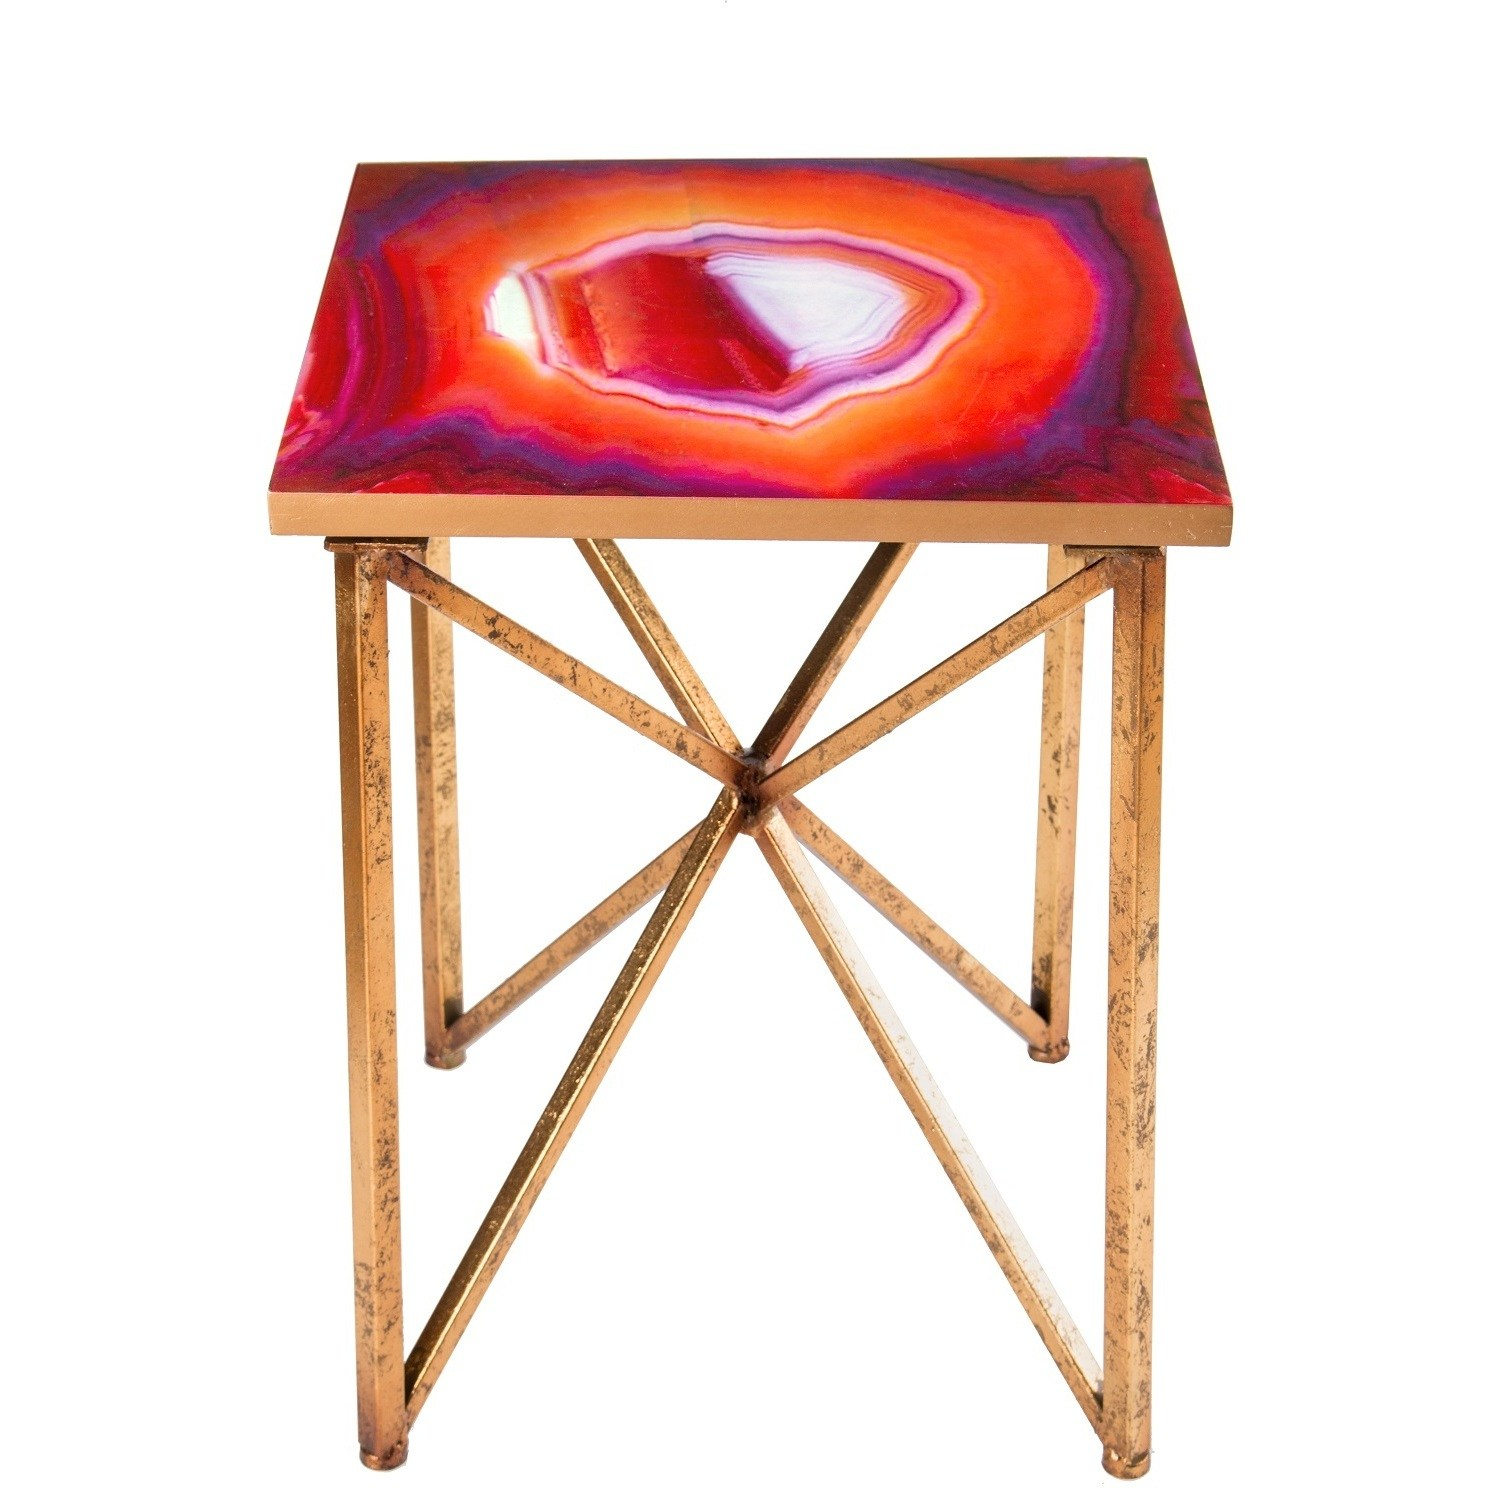 statements rouge agate side table inch tall free glass accent shipping today round and chairs basic coffee jacket hoodie gold decorative accessories tablecloth for lounge